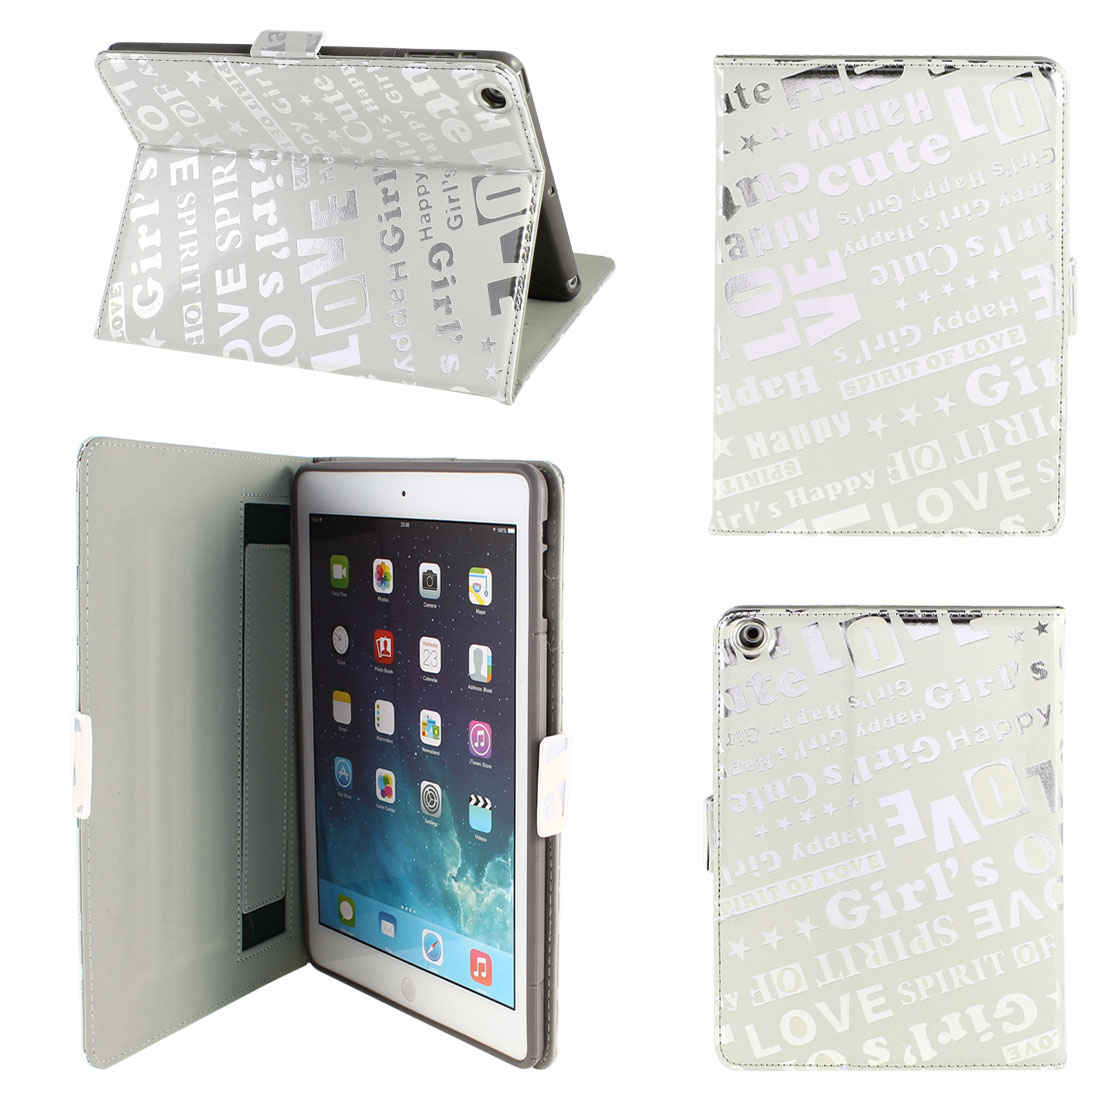 PU Leather Folio Stand Case Skin Cover Gray Silver Tone for iPad Air 5